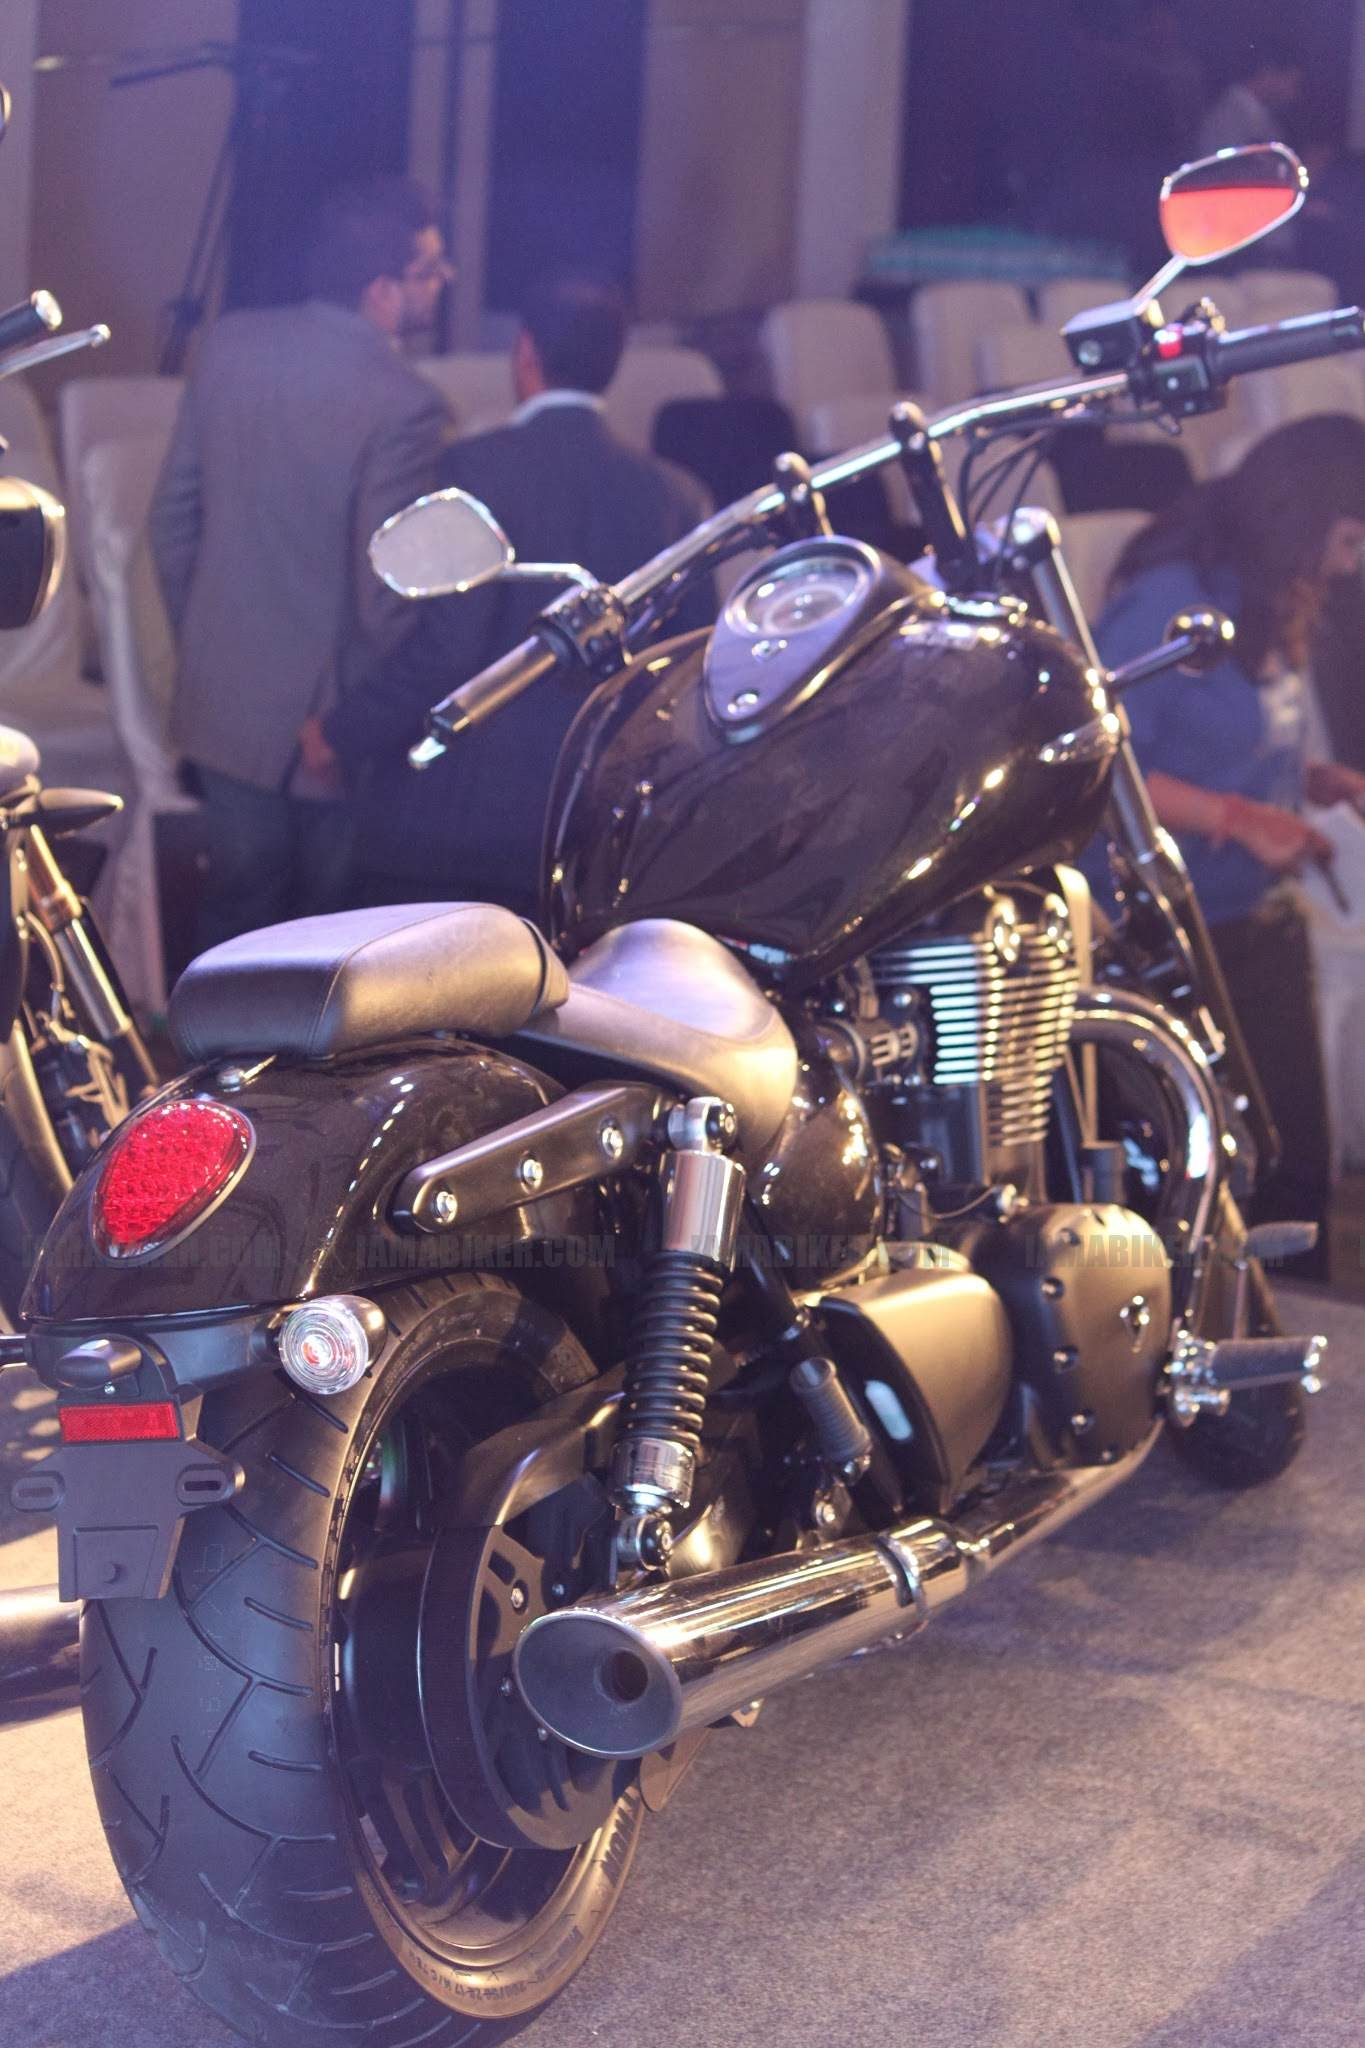 triumph motorcycles india launch - 61